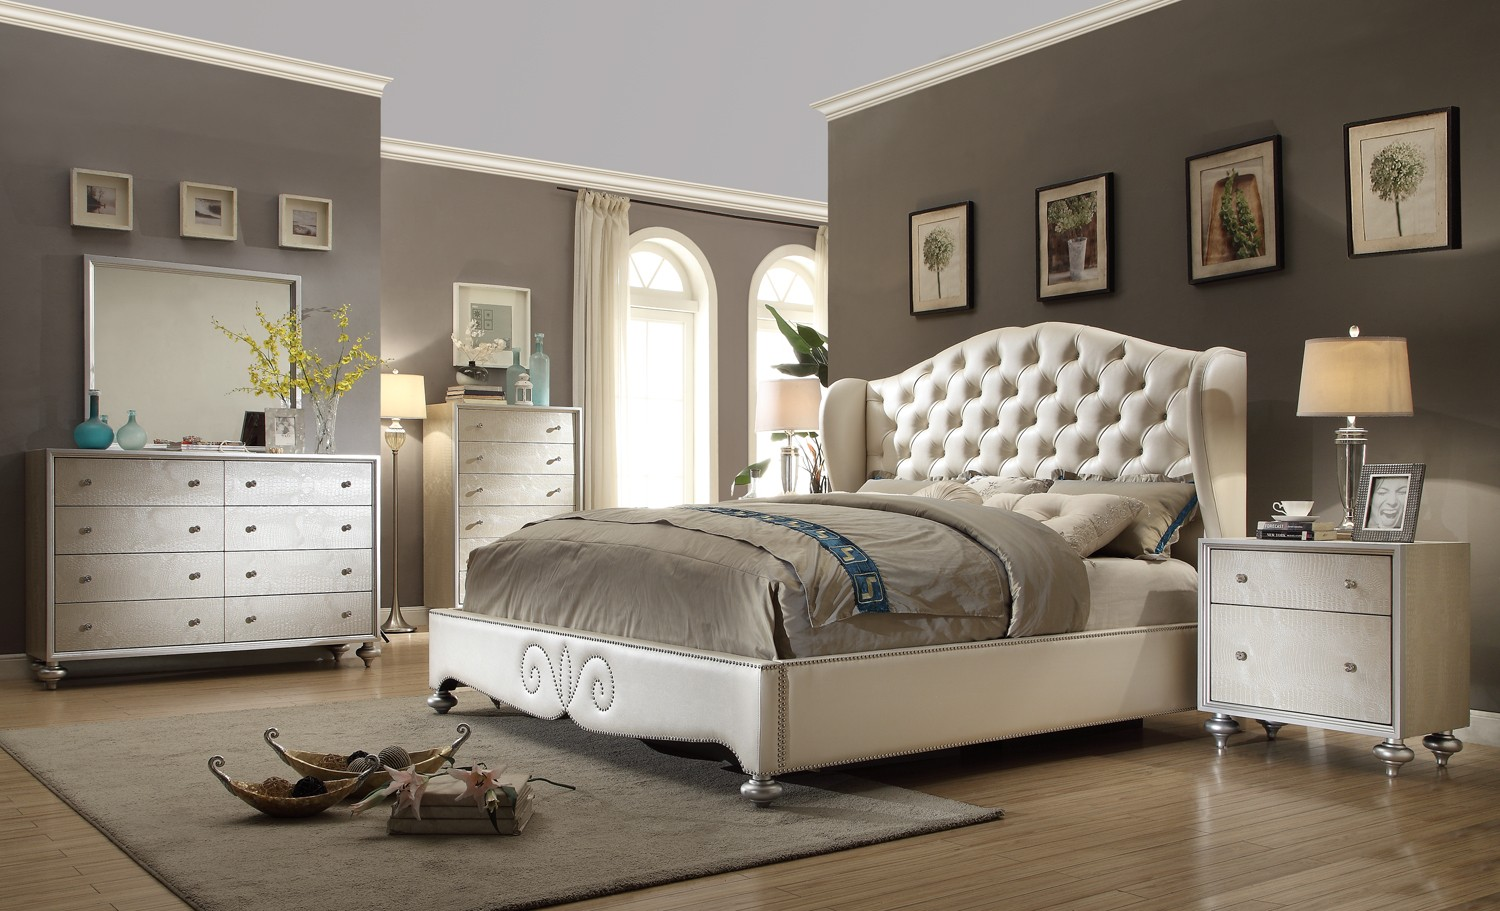 Tufted wingback bed button tufted upholstered bed - White bedroom furniture for girl ...